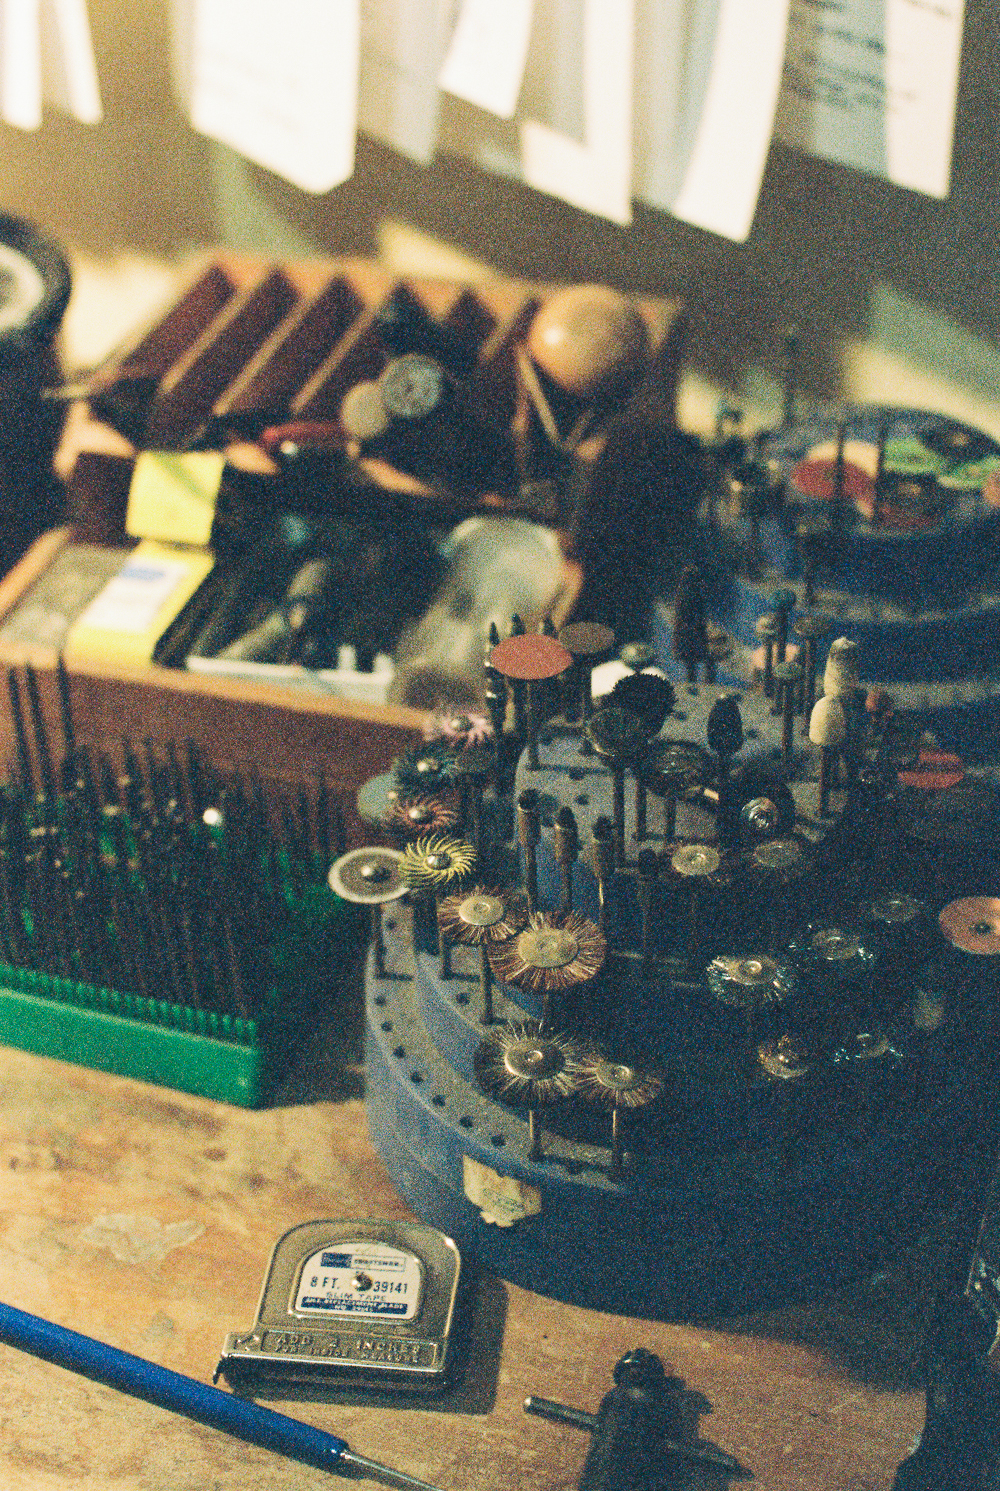 Broken Pine Workspace - Portra 400 on Nikon N90s